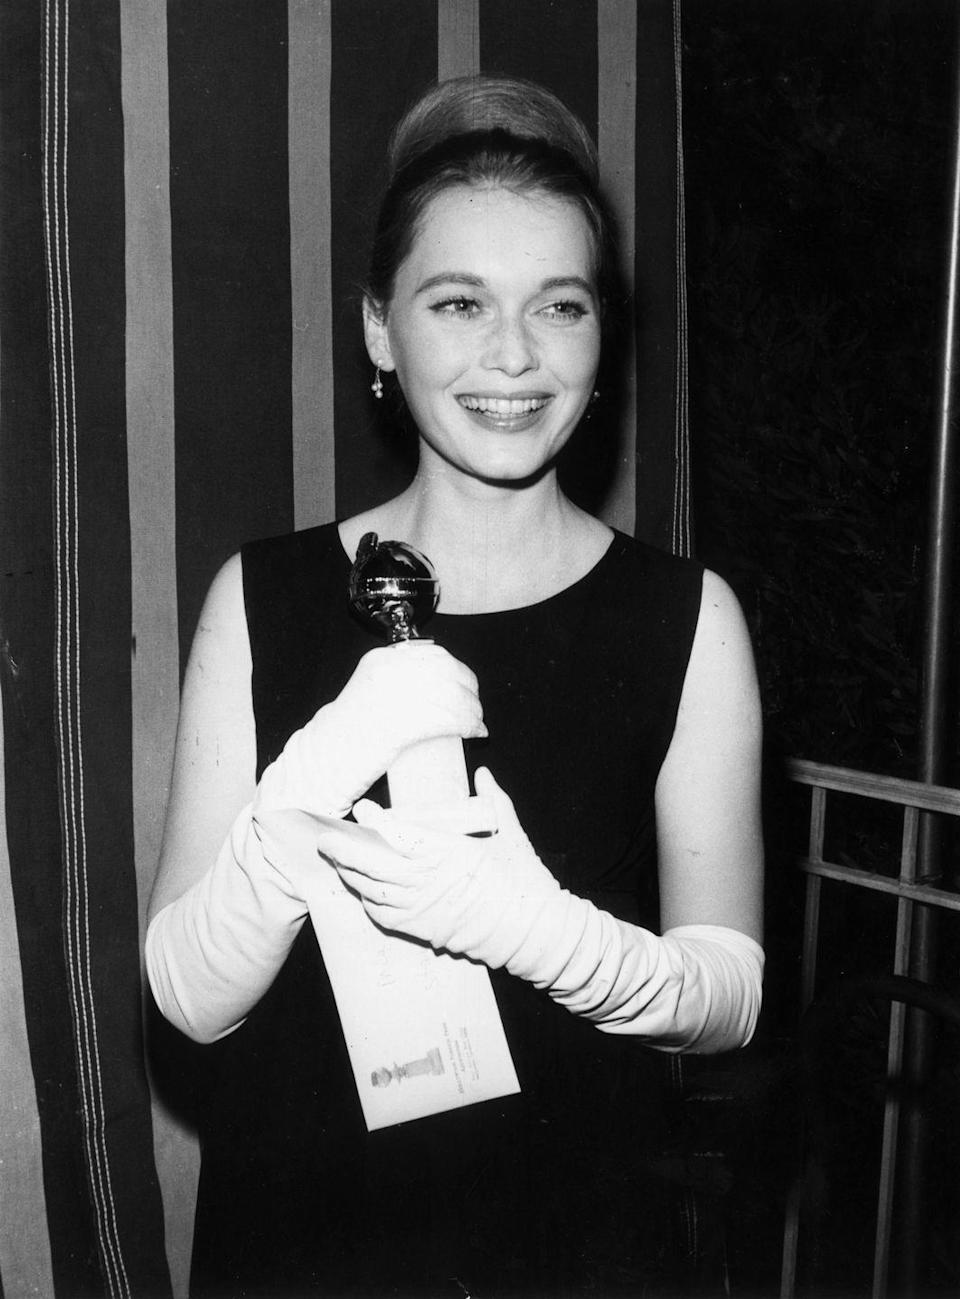 <p>Mia Farrow went for the<em> Breakfast at Tiffany's </em>look with a form-fitting black dress, long white gloves, and a high bun in 1965. </p>